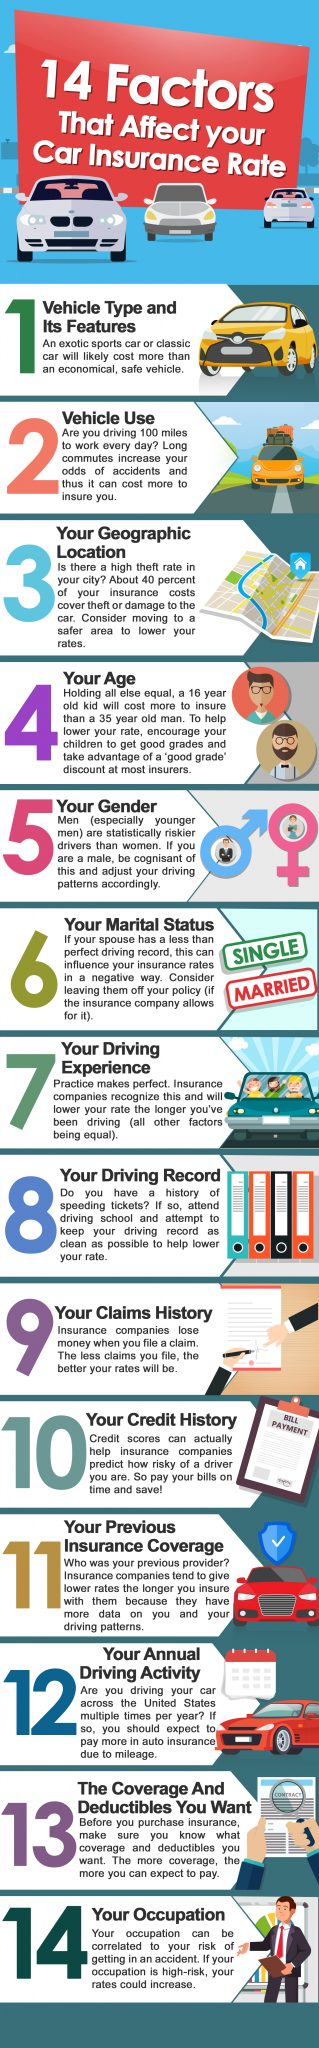 14 Factors That Affect Your Car Insurance Rate Infographic Tatum